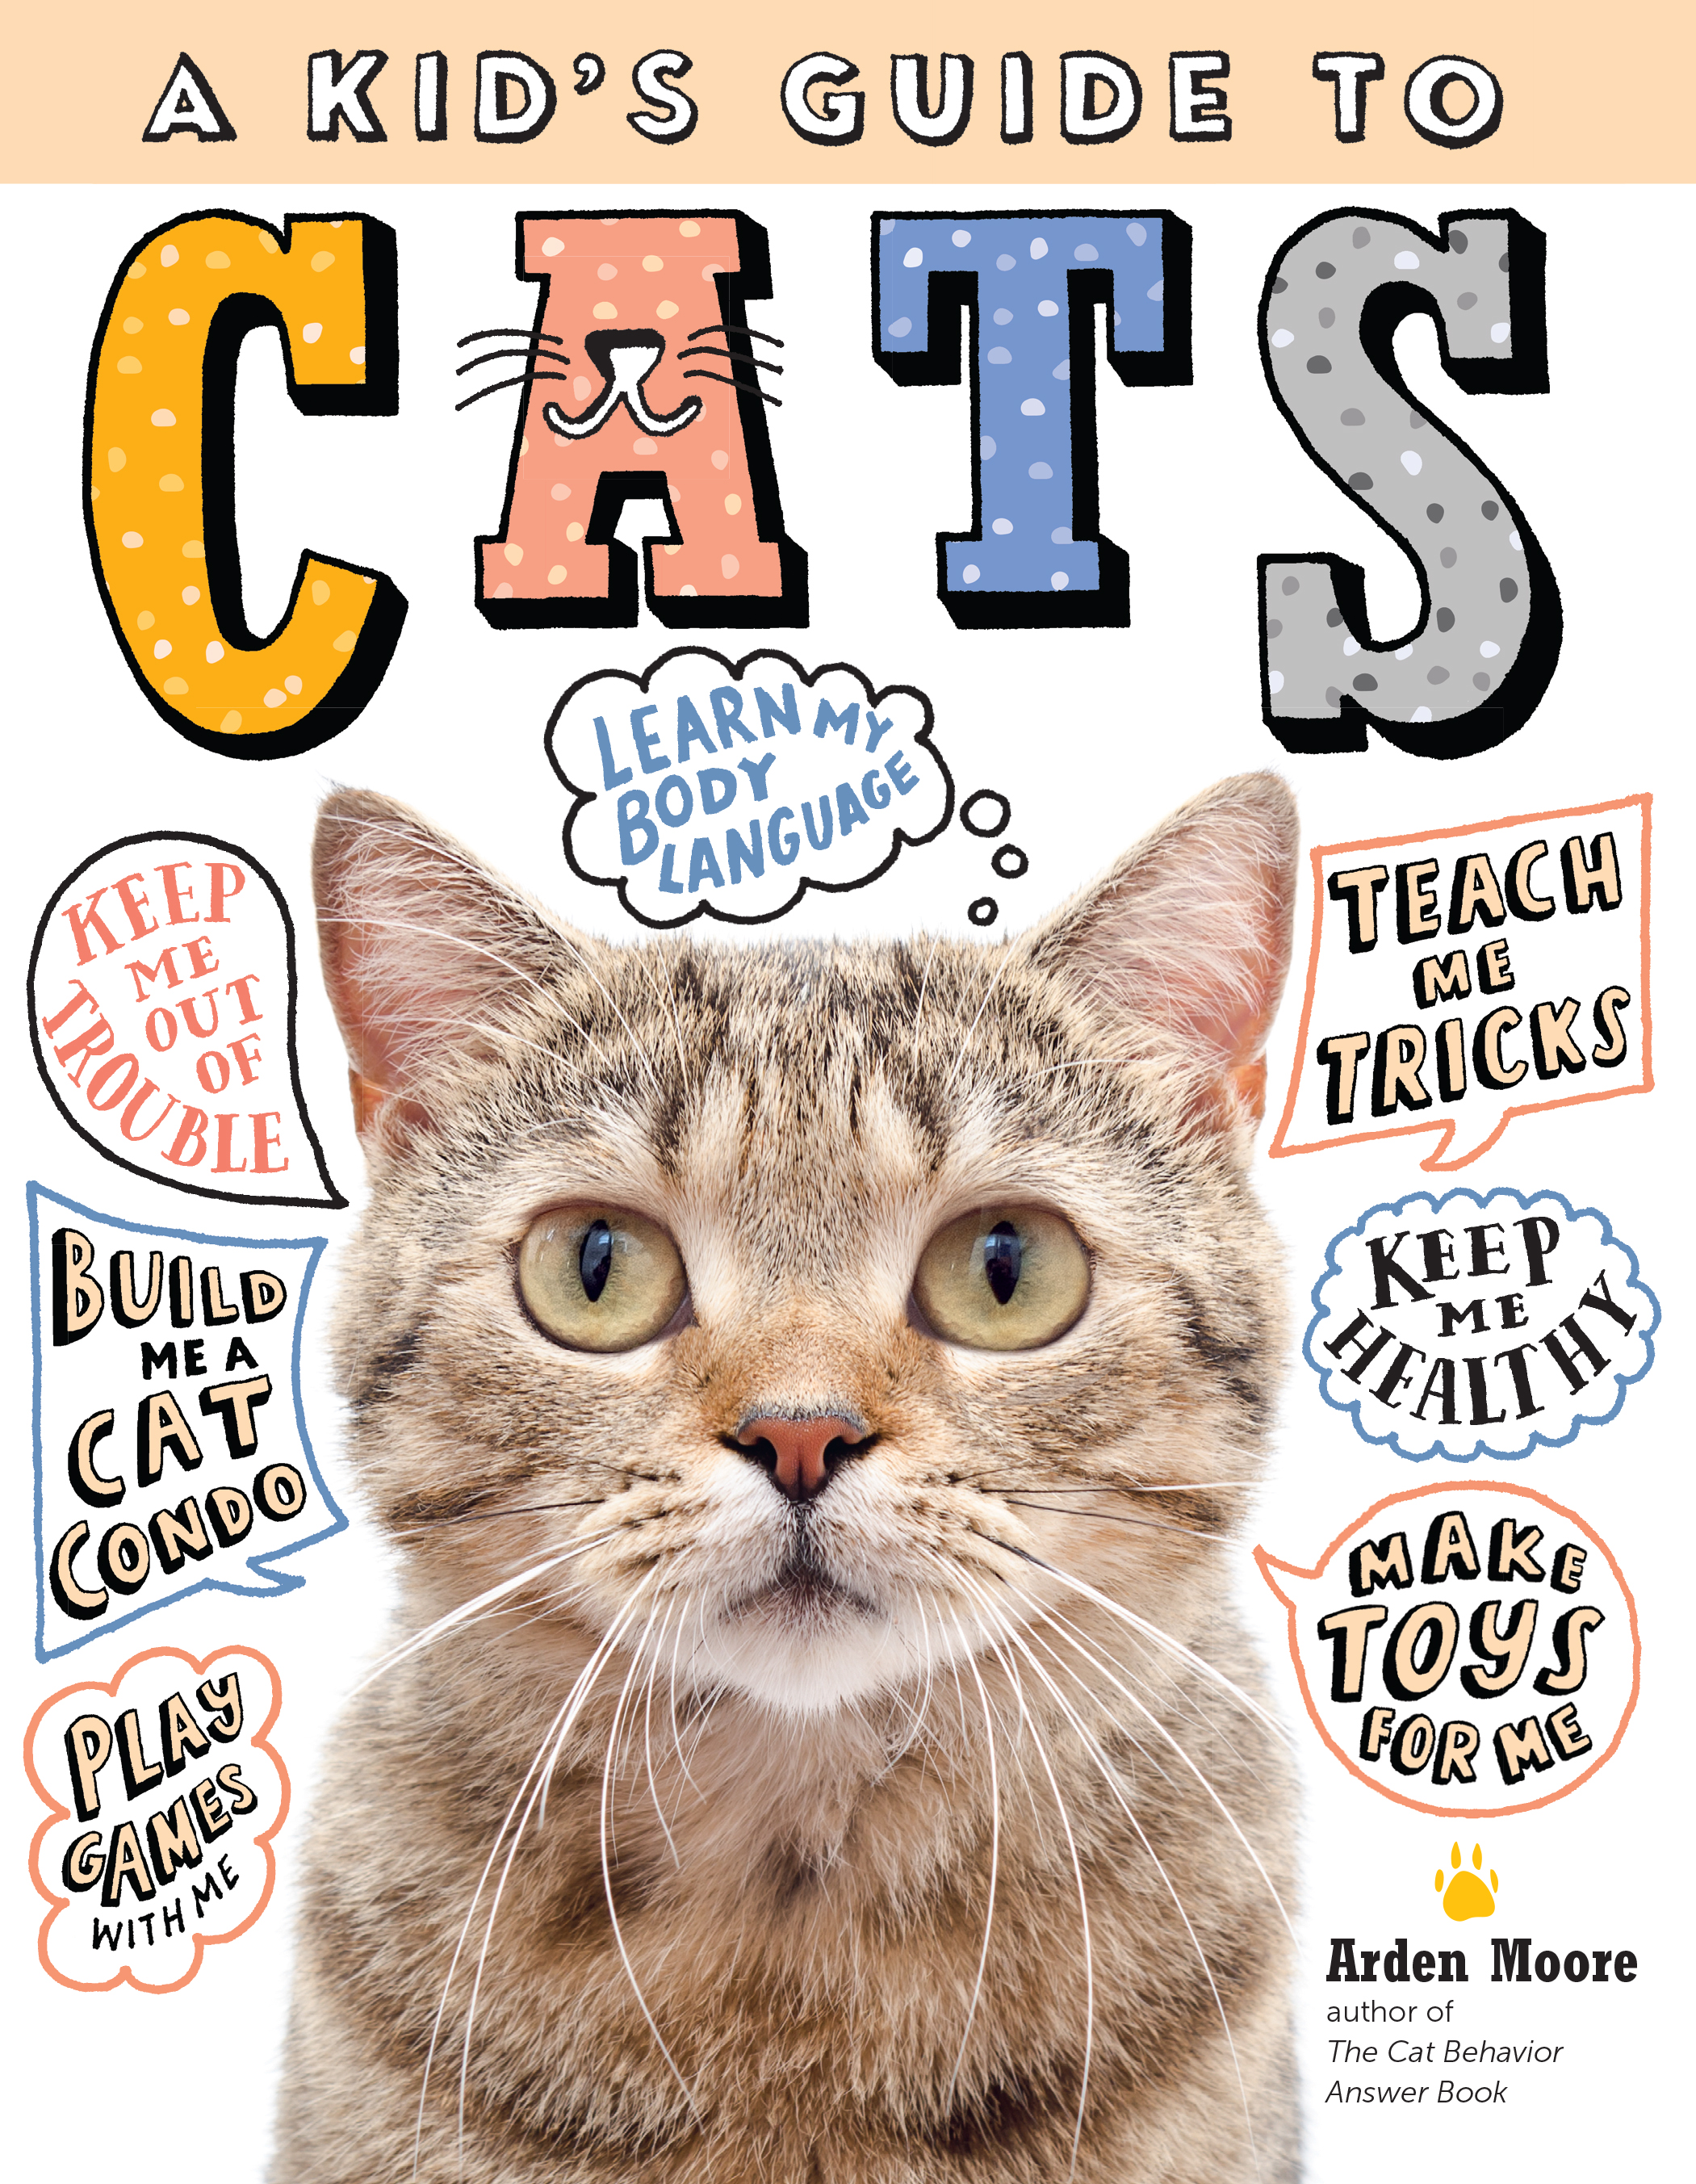 A Kid's Guide to Cats How to Train, Care for, and Play and Communicate with Your Amazing Pet! - Arden Moore